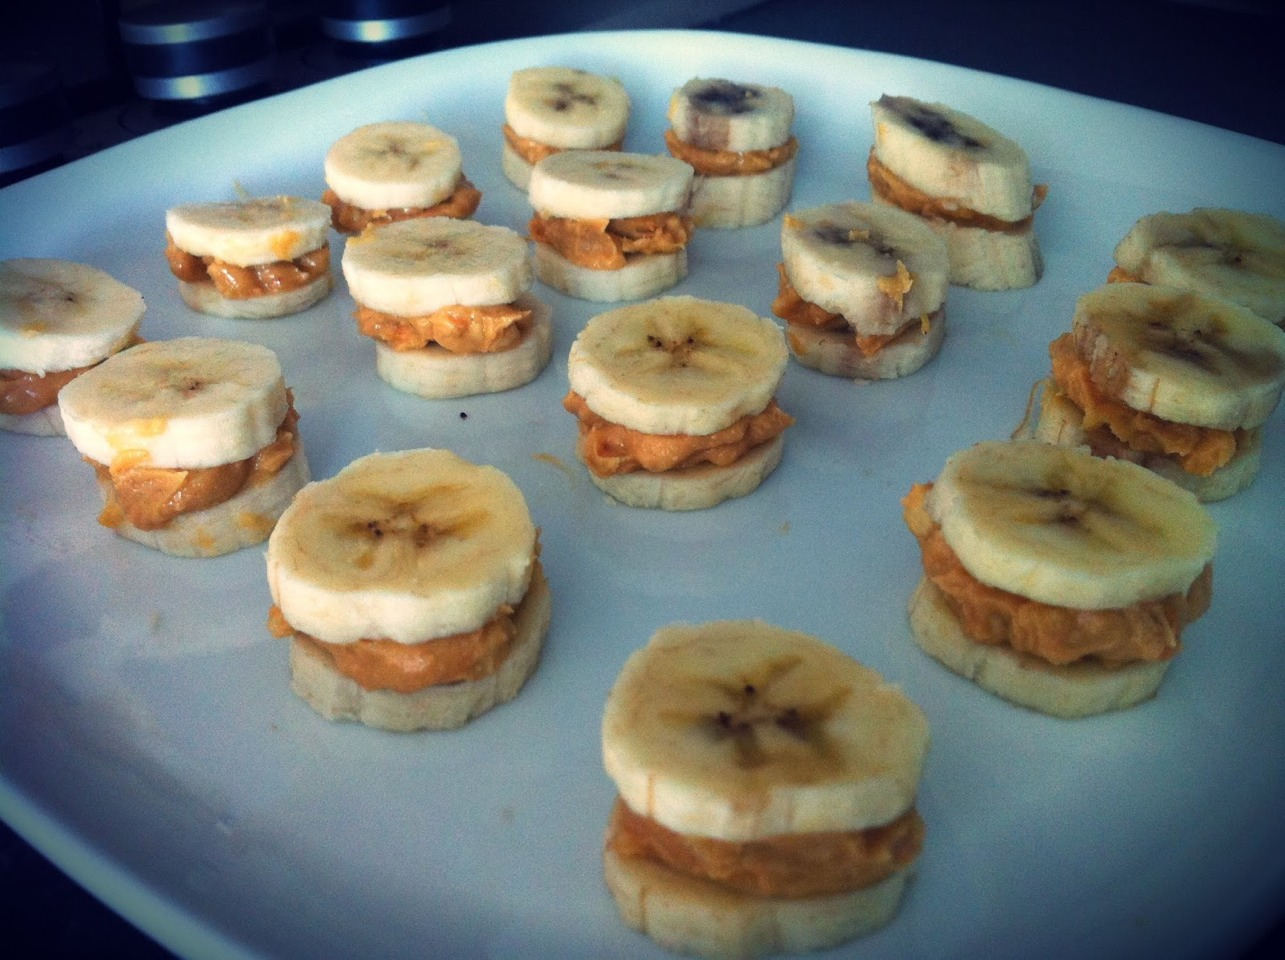 Peanut butter and banana sandwiched